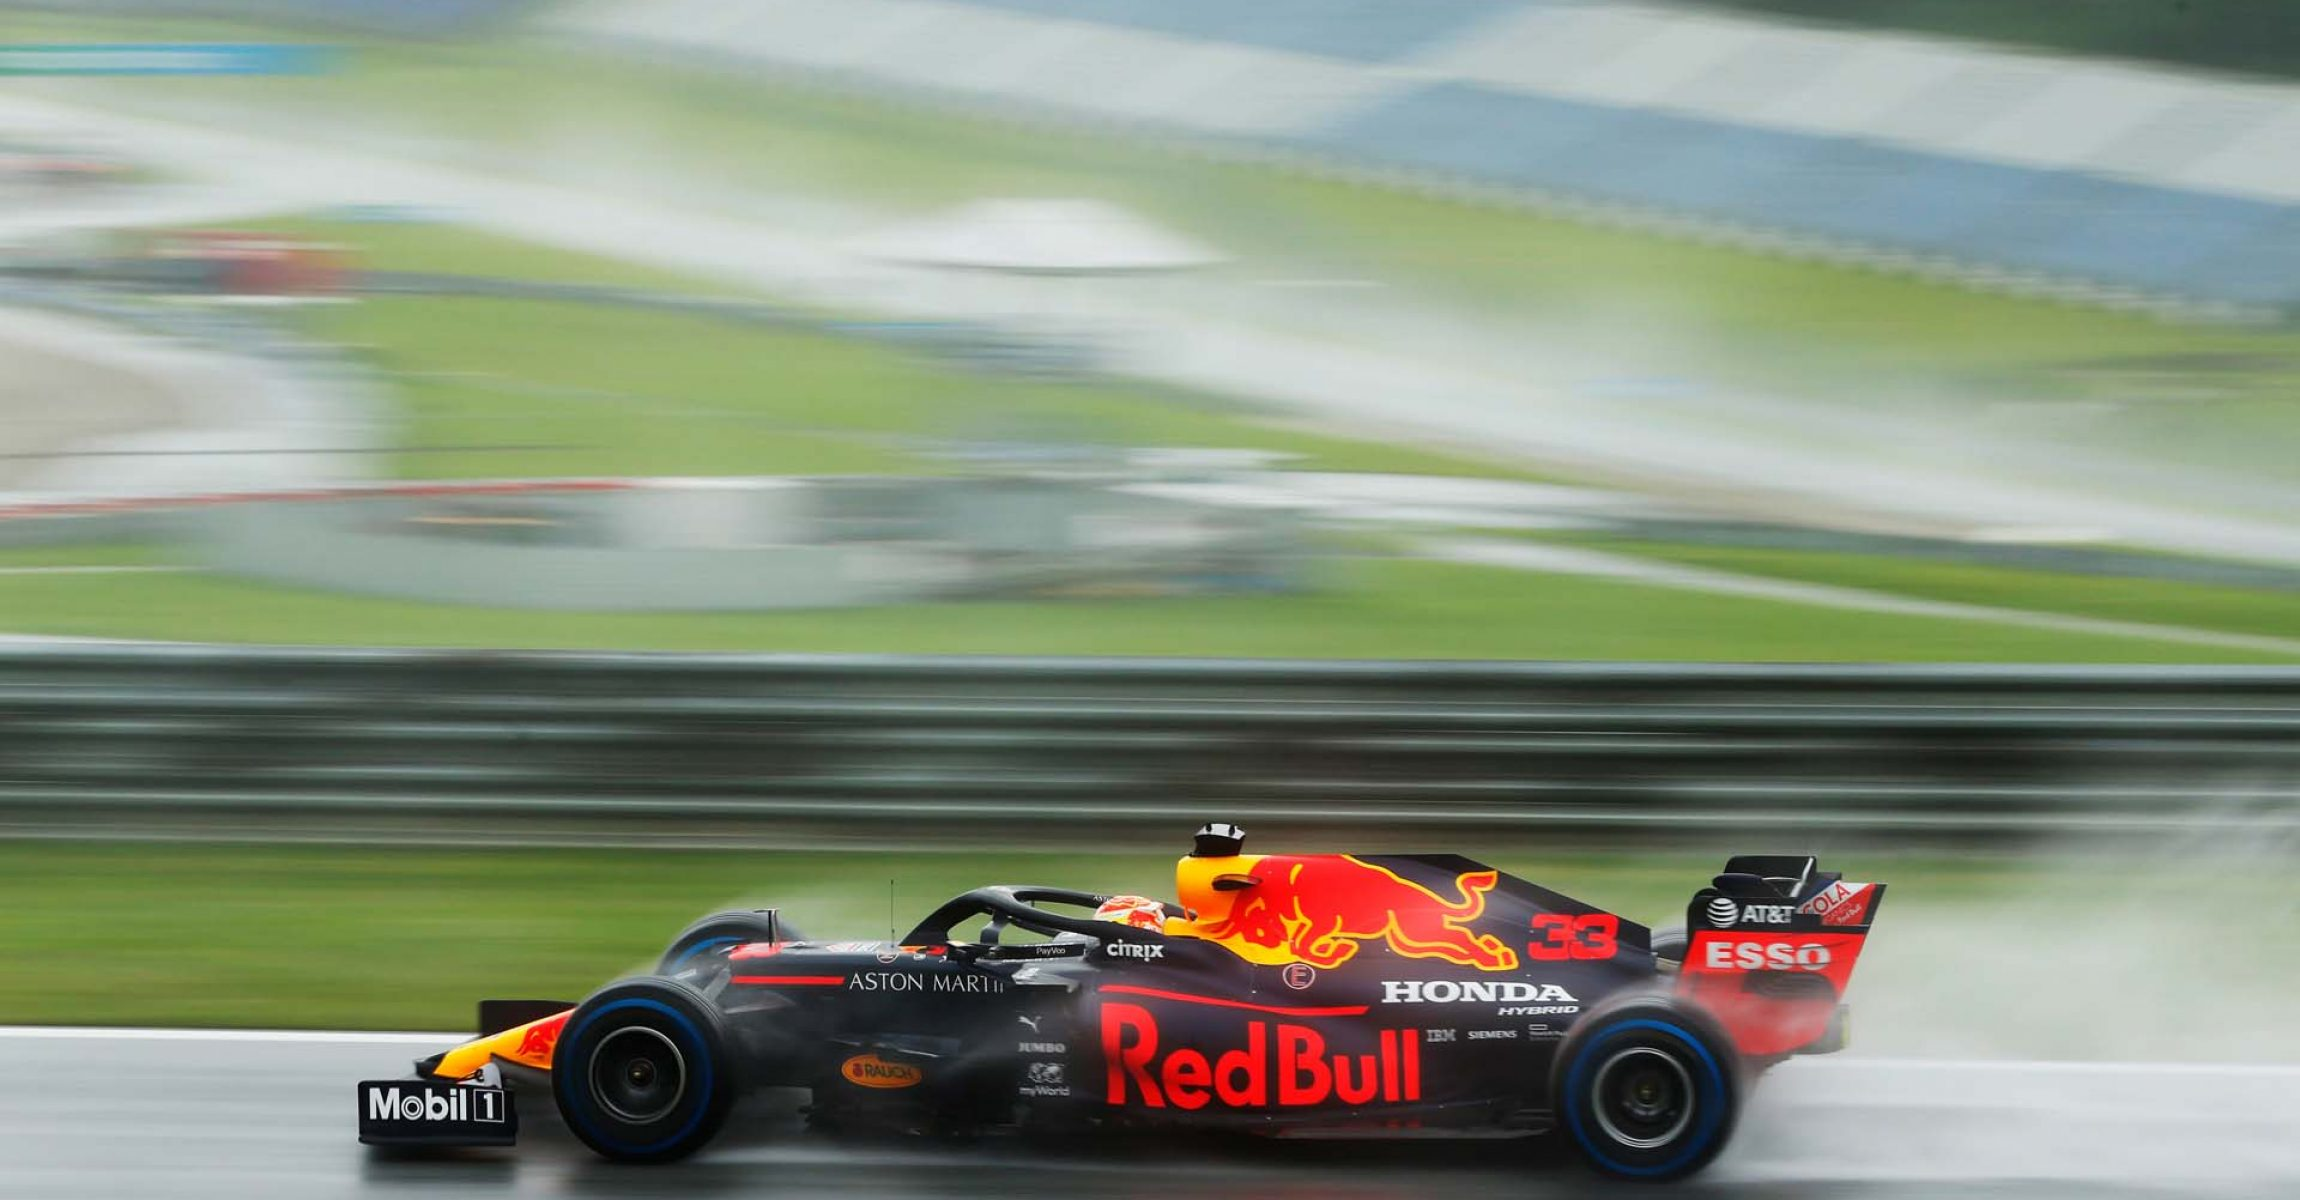 SPIELBERG, AUSTRIA - JULY 11: Max Verstappen of the Netherlands driving the (33) Aston Martin Red Bull Racing RB16 on track during qualifying for the Formula One Grand Prix of Styria at Red Bull Ring on July 11, 2020 in Spielberg, Austria. (Photo by Darko Bandic/Pool via Getty Images) // Getty Images / Red Bull Content Pool // AP-24KMM21YN2111 // Usage for editorial use only //